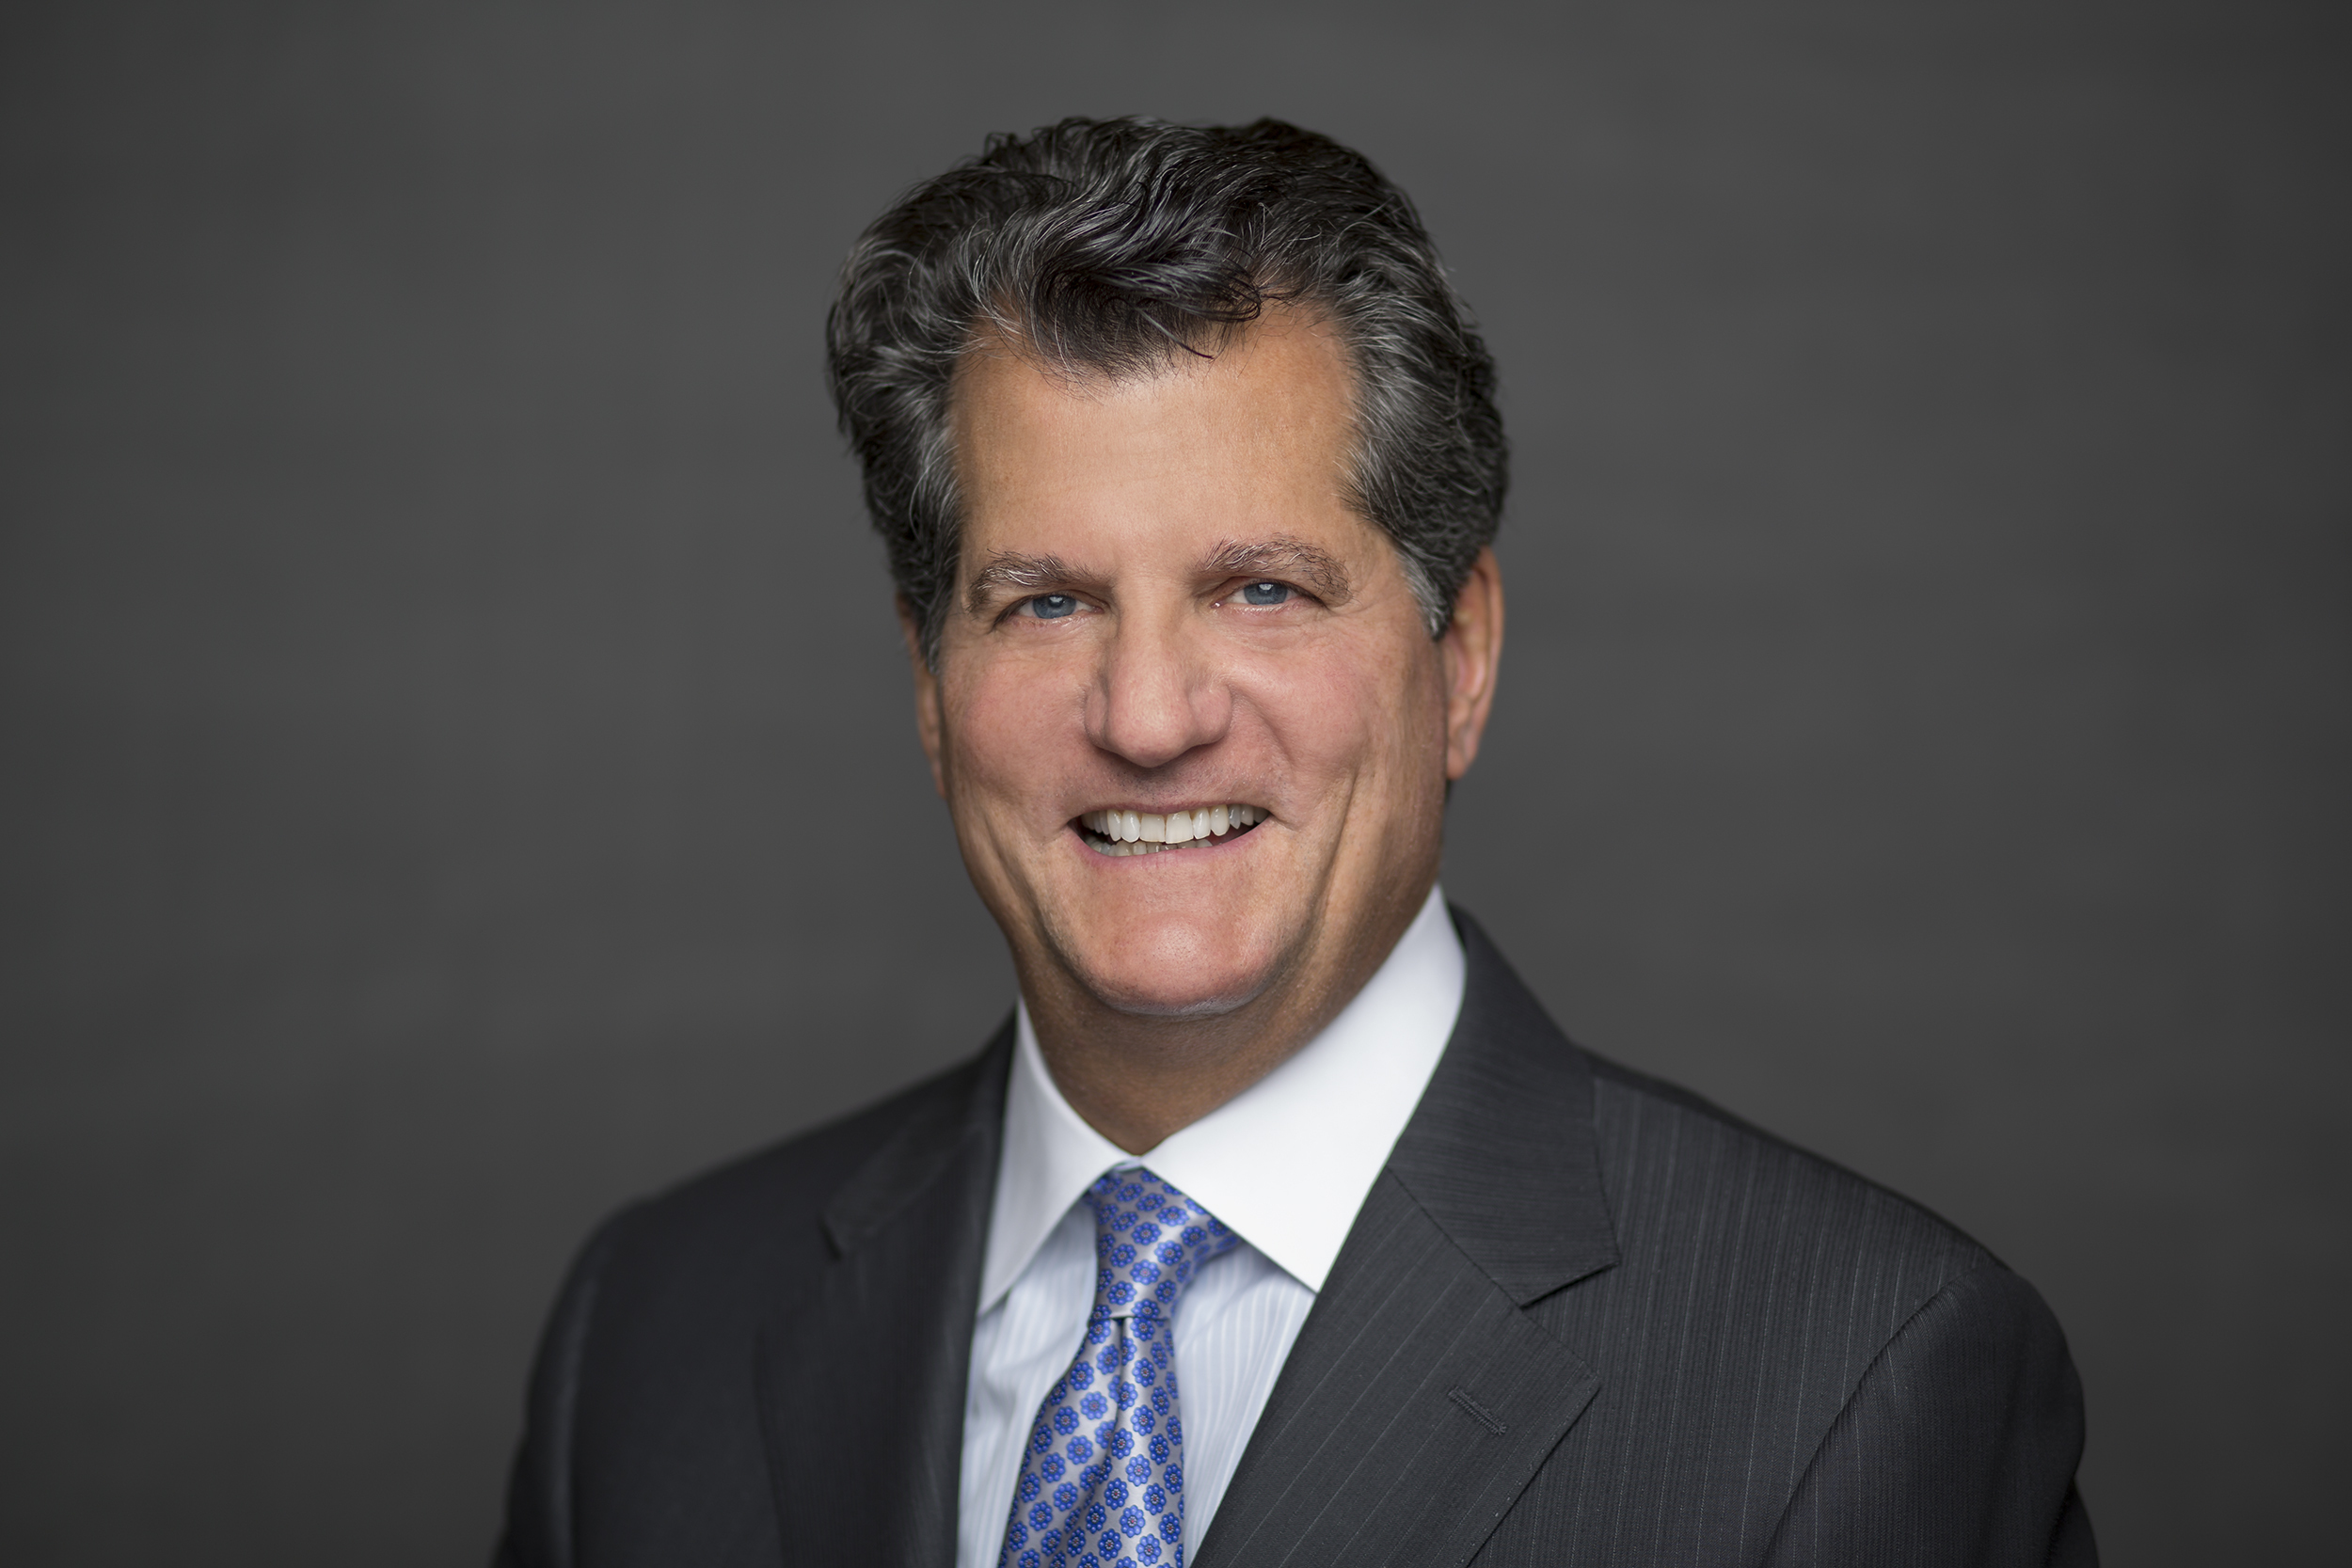 Trinseo CEO Christopher Pappas to Receive Leadership Award from NY ...